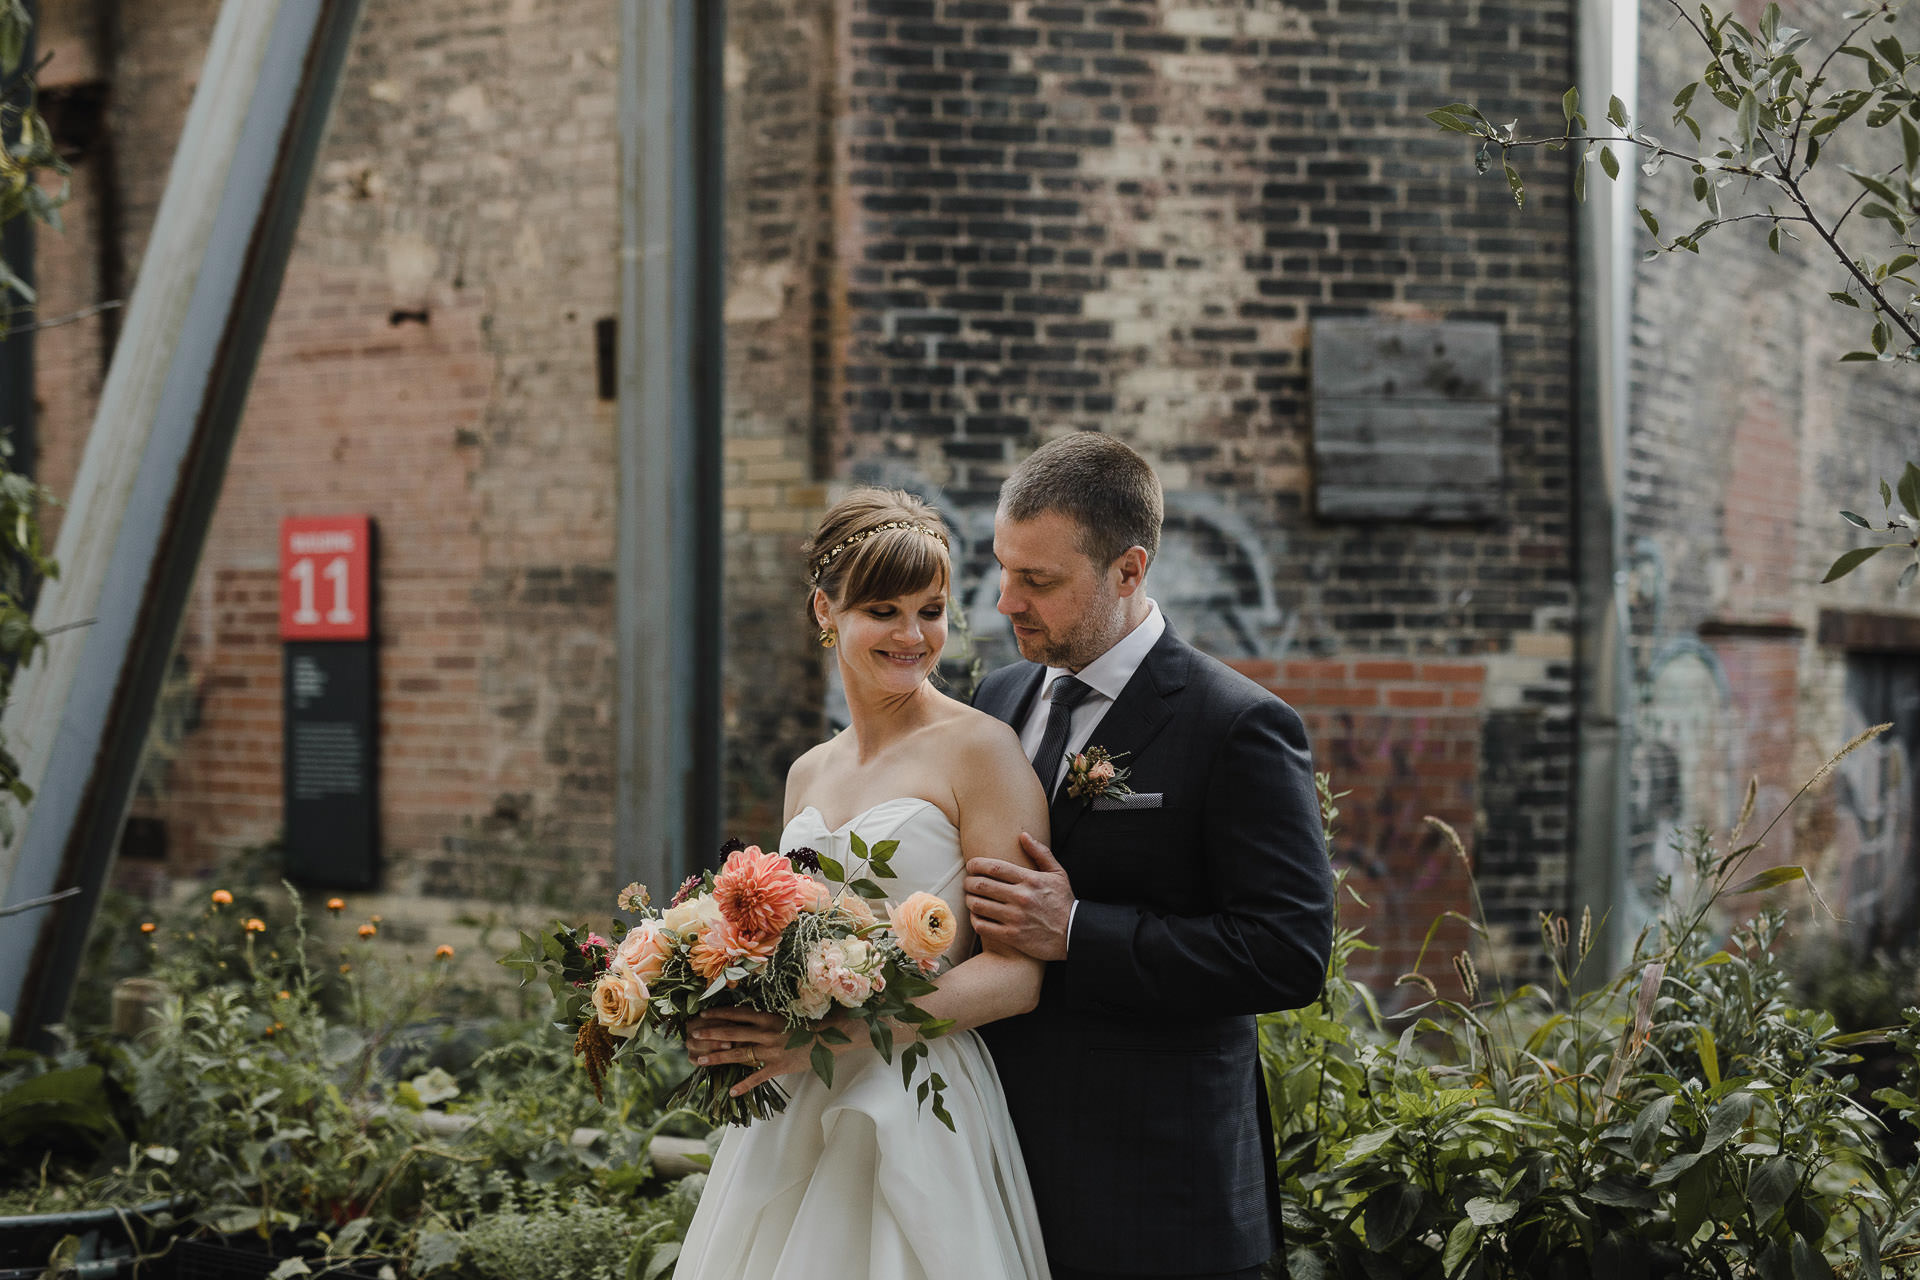 Evergreen Brickworks wedding photographer - portraits in the brickworks